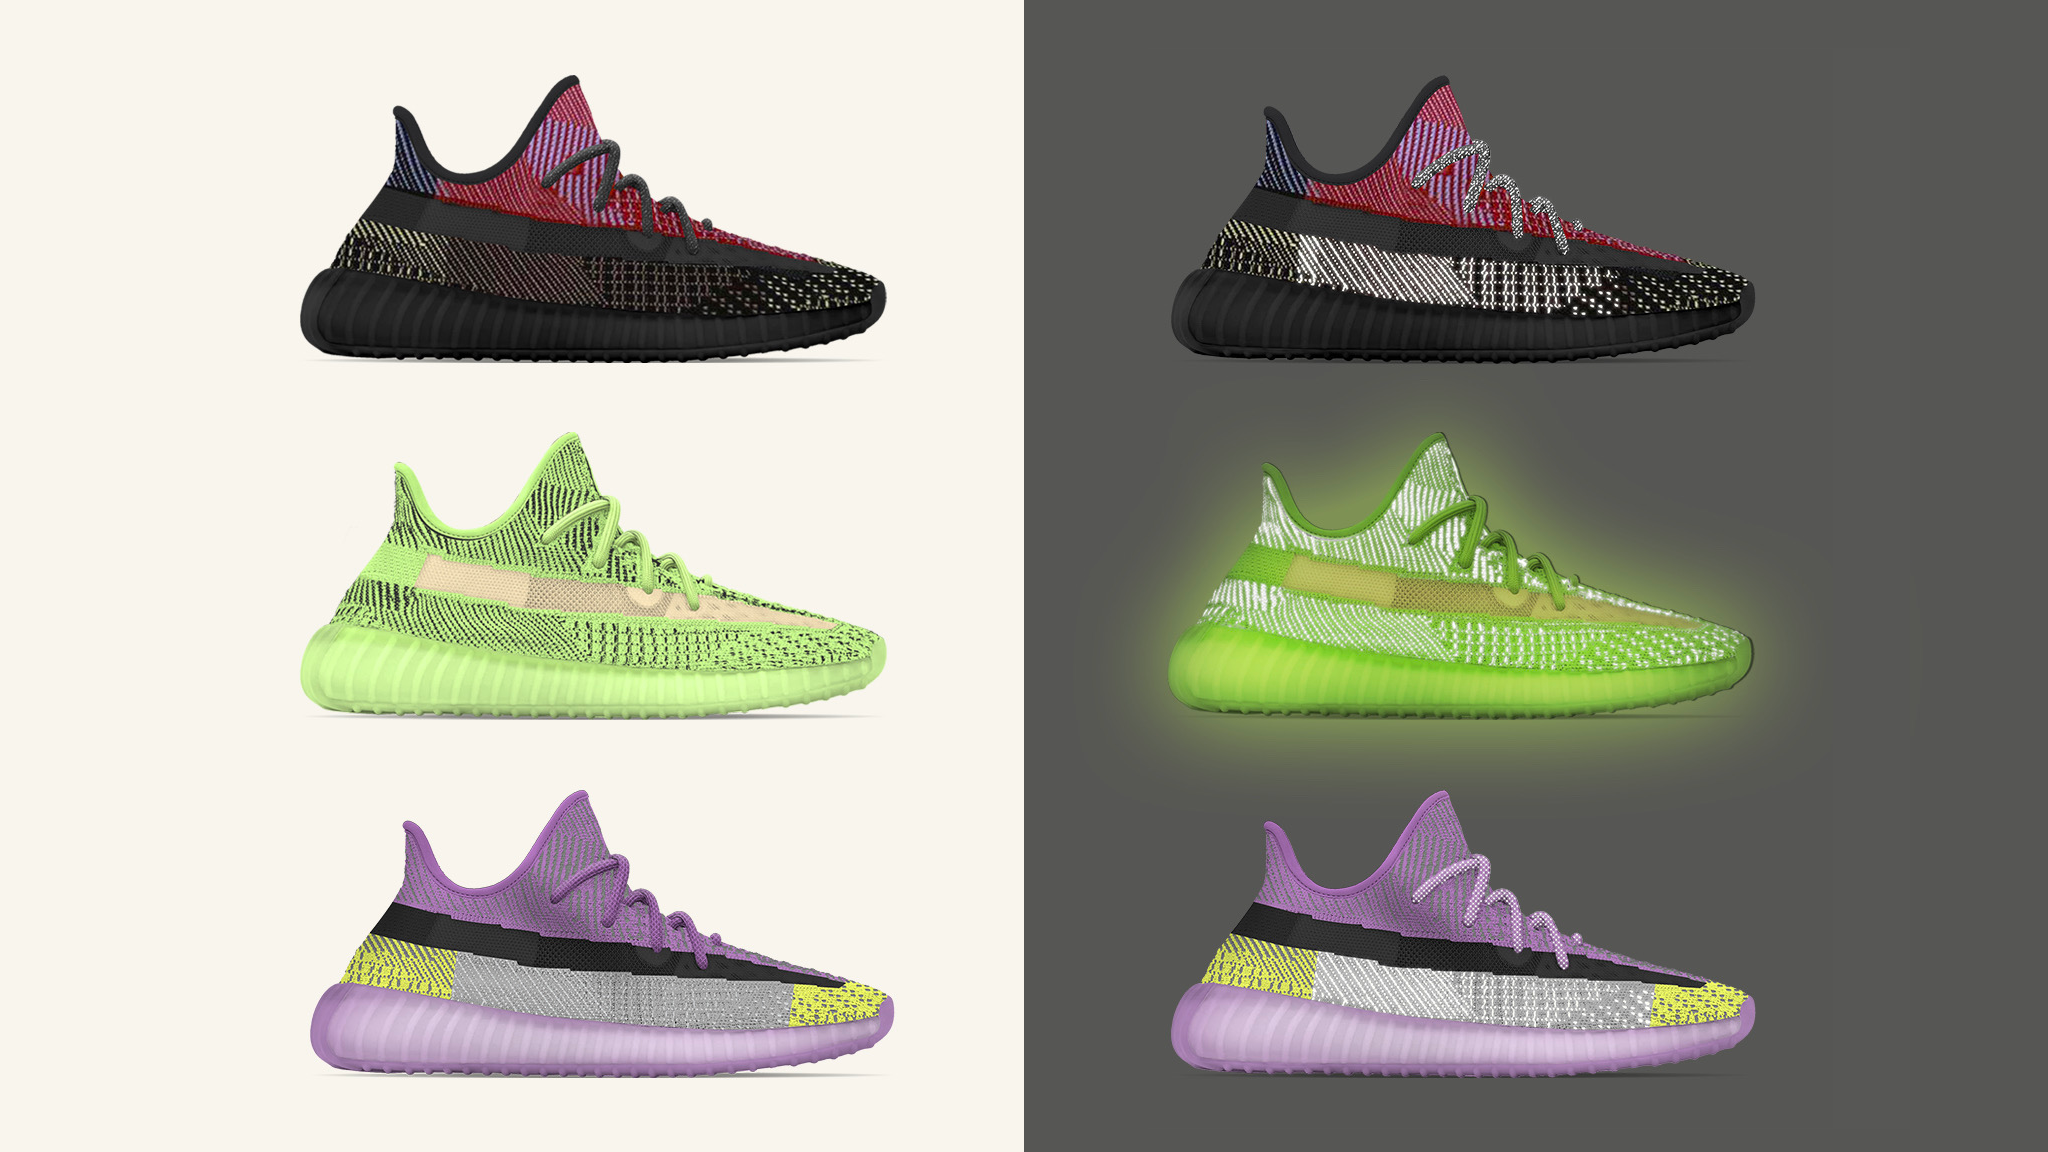 YEEZY BOOST 350 V2 Fall/Winter 2019 Lineup